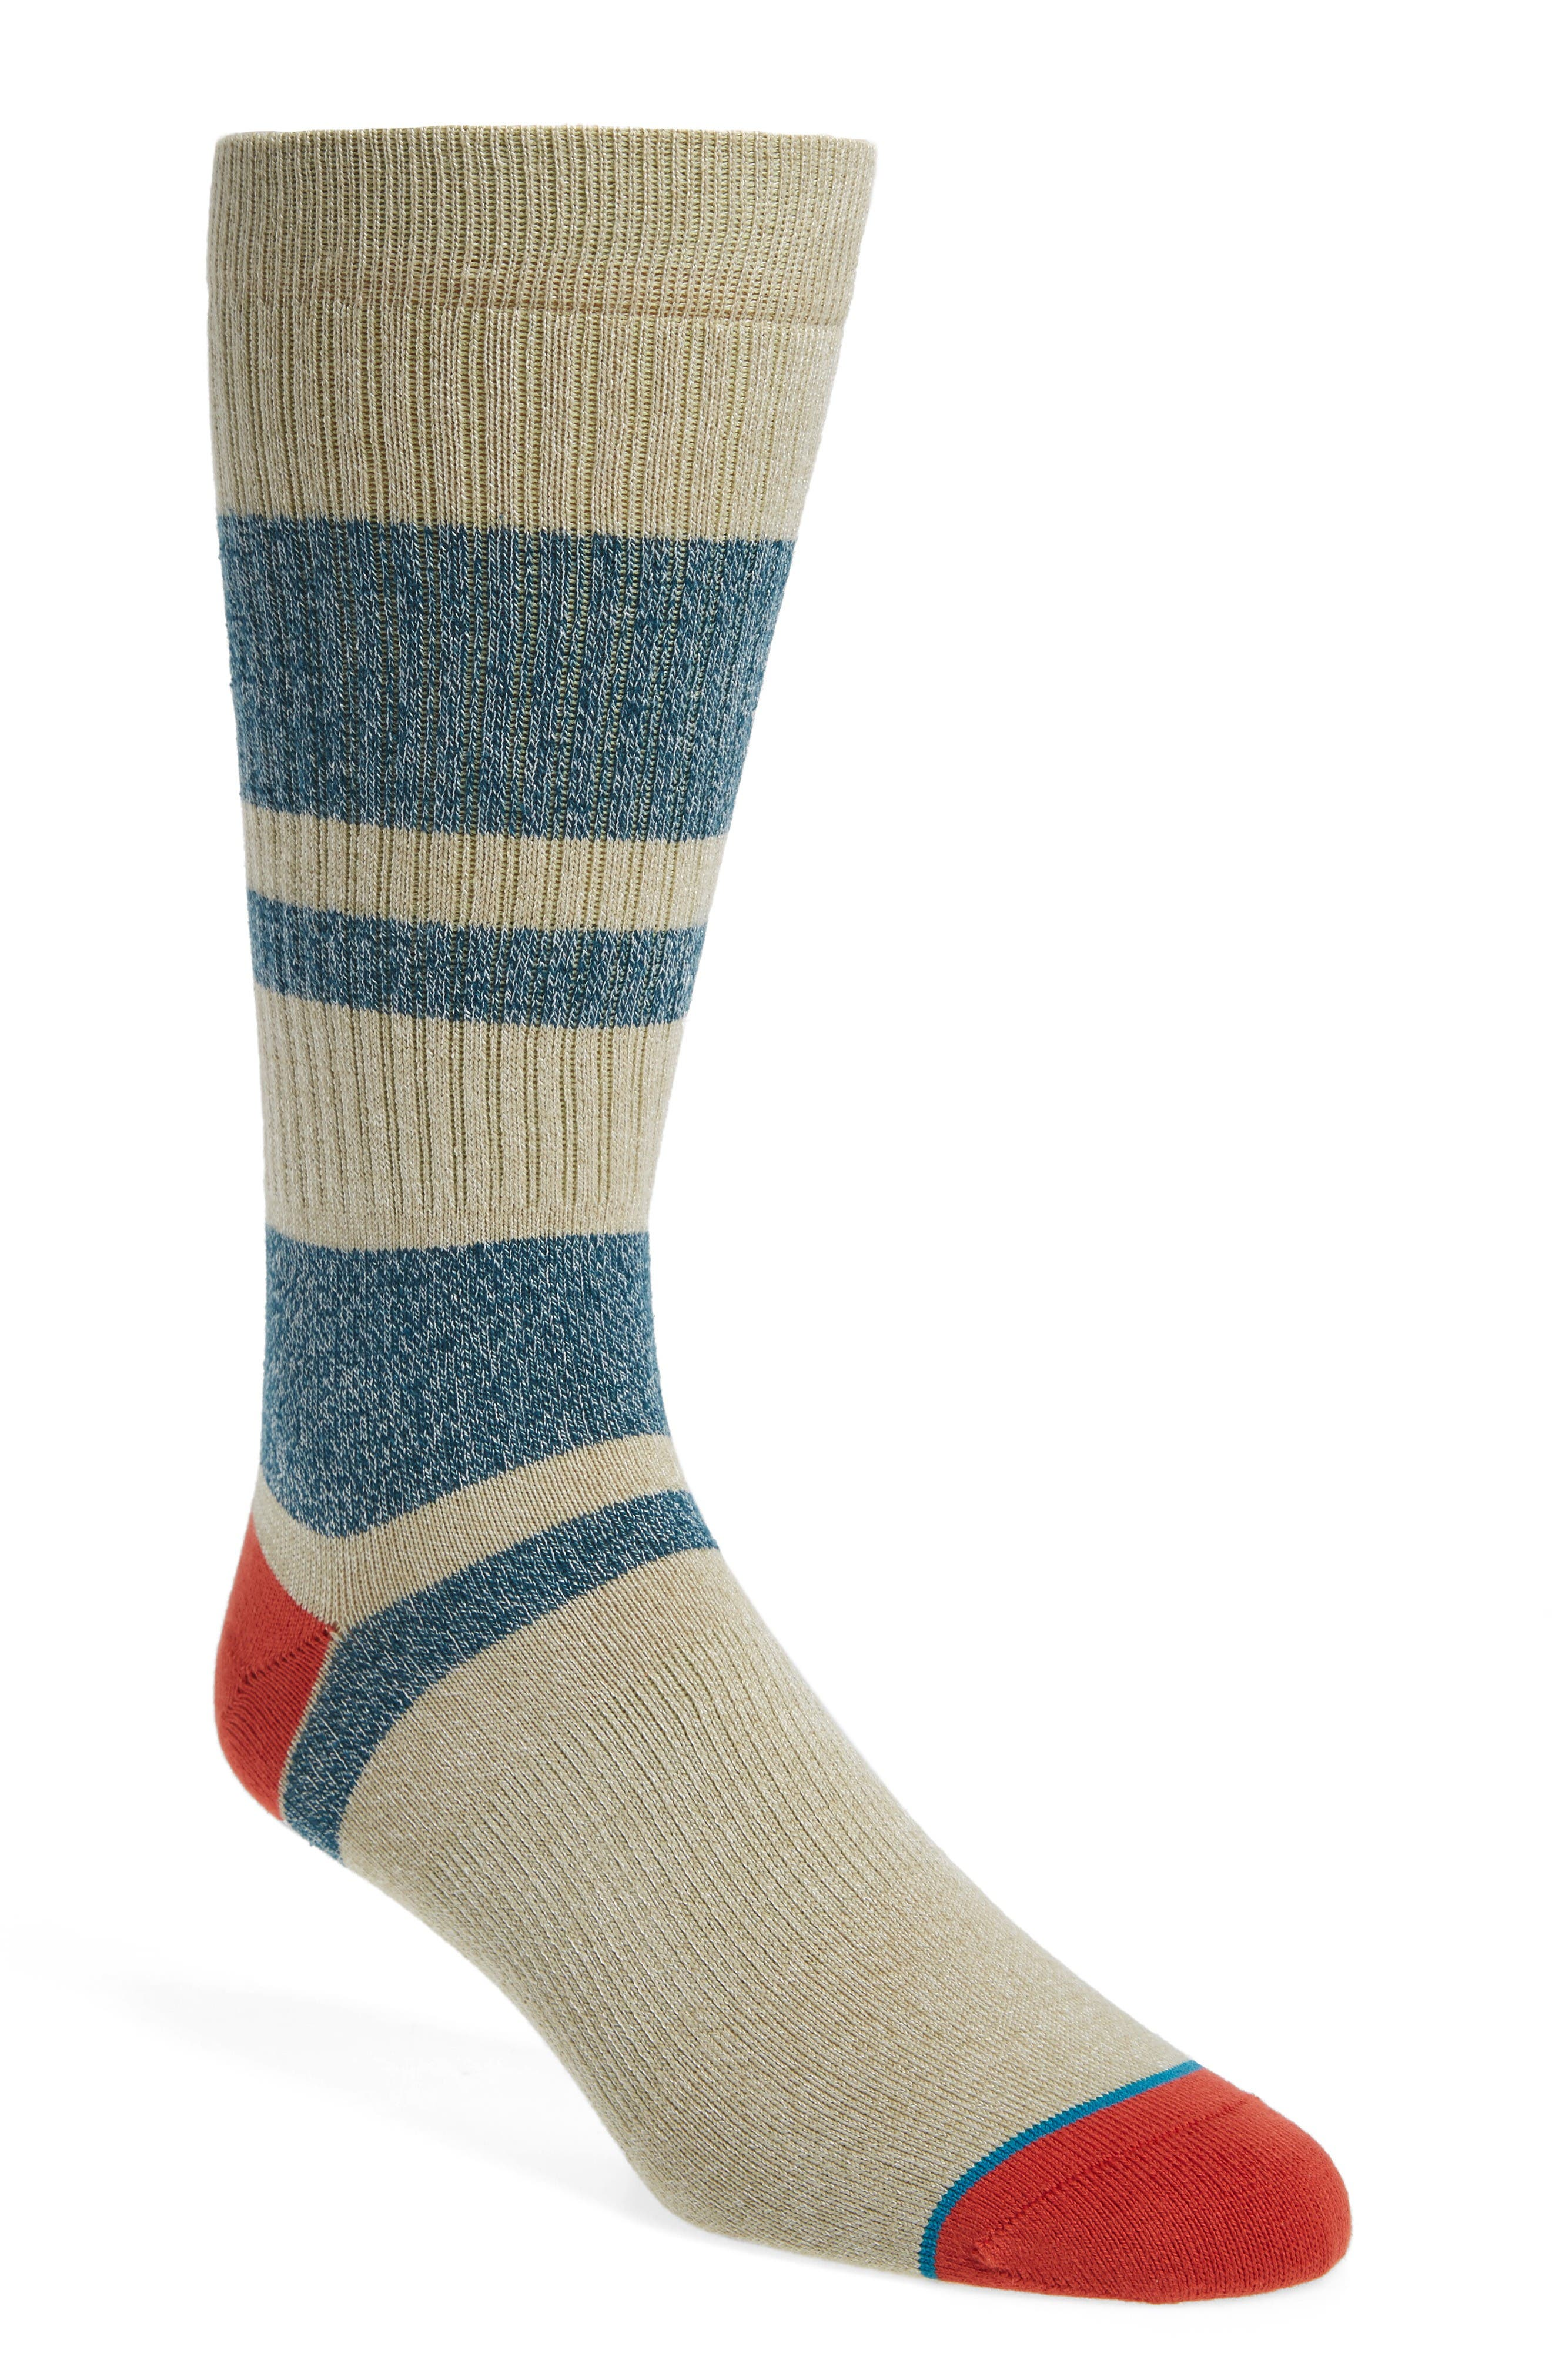 First Point Socks,                         Main,                         color, White/ Blue